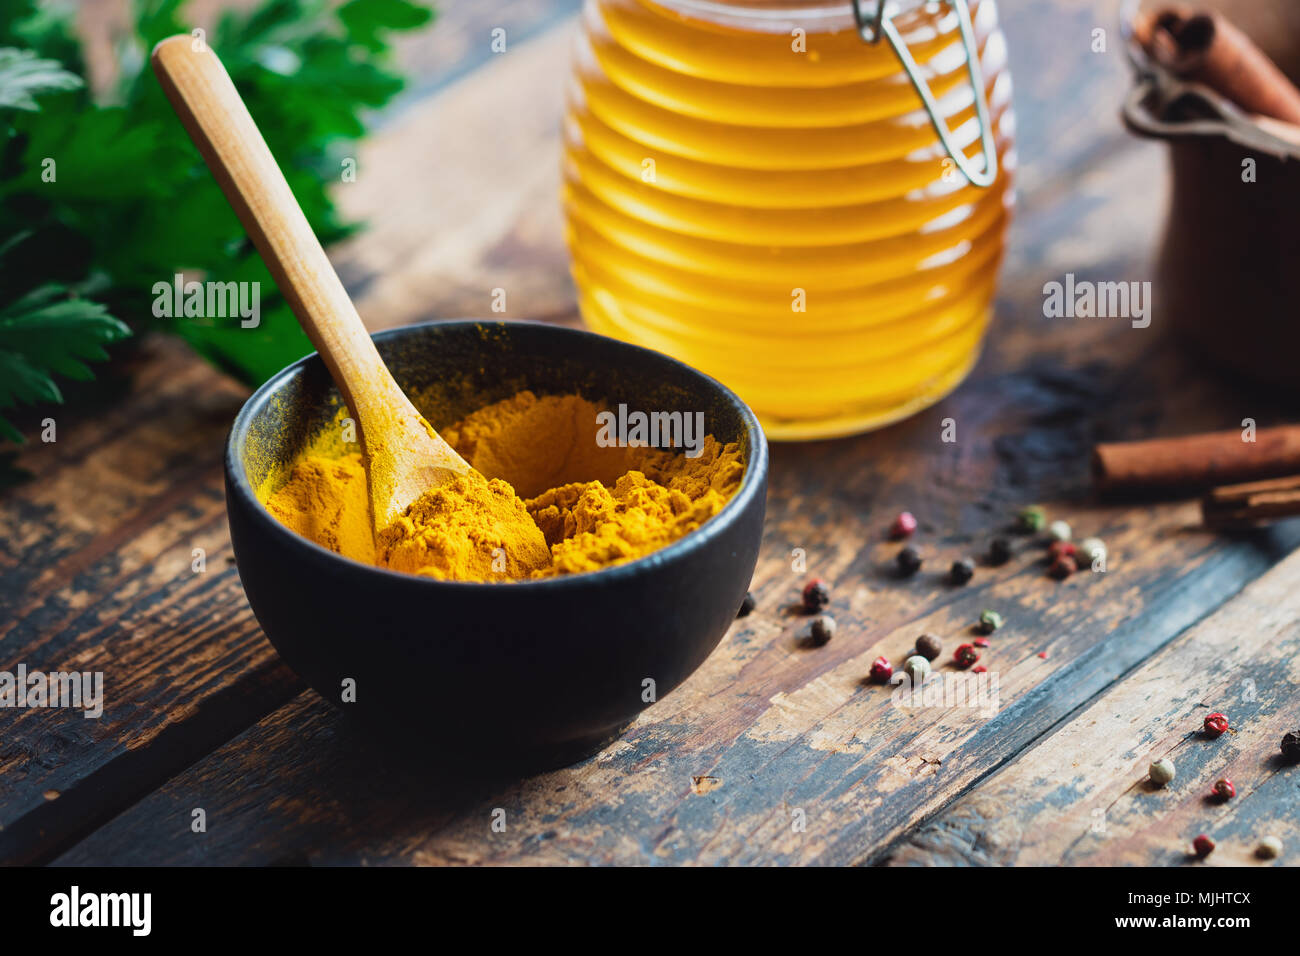 Turmeric powder in a black bowl with spices on rustic wood table - Stock Image